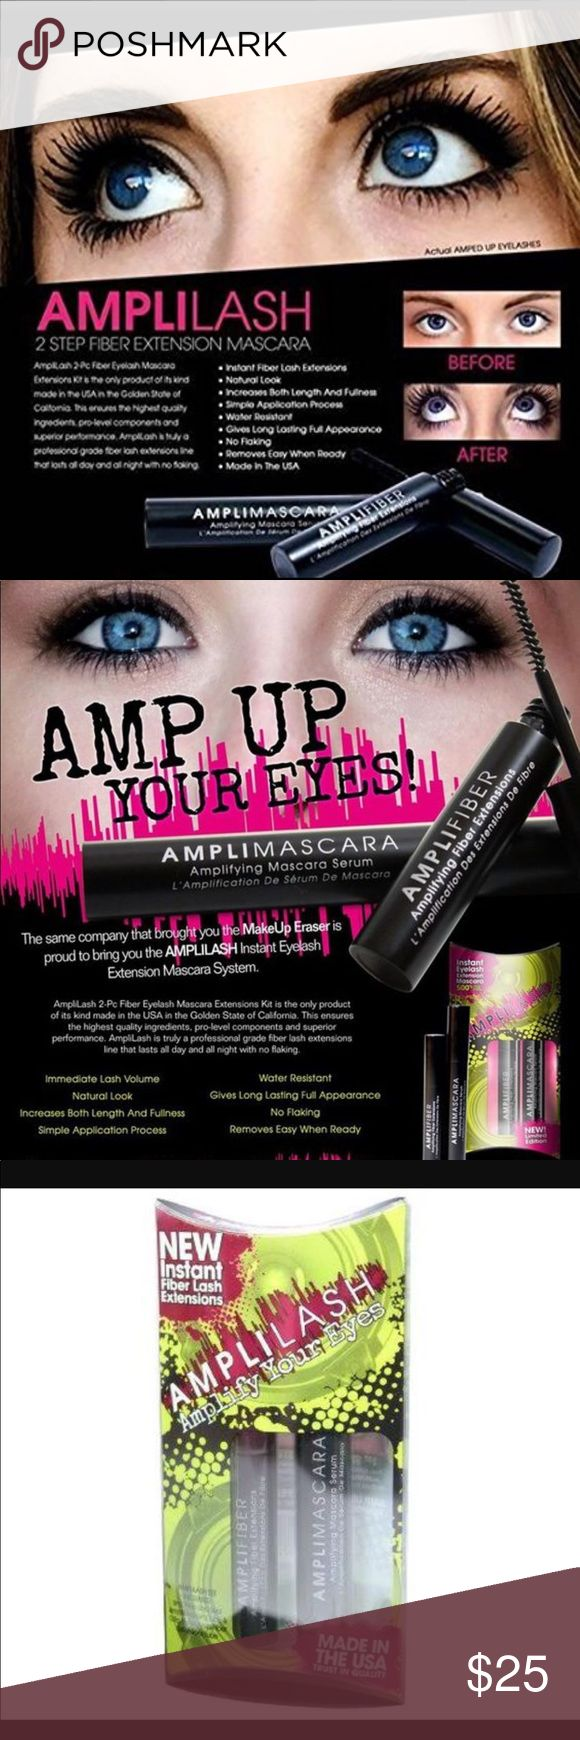 "Amplilash fiberlash extensions mascara FREE GIFT Brand new in package. never opened! Amplilash lash amplifying mascara. Two piece fiber lash extensions mascara set. ""Rich black color and when properly applied, it will last all day and night with no flaking or burning!"" See photo for ingredient list. **I will throw in a free gift with purchase! You will receive a brand new tube of Awaken eye revitalizer cream by Rocasuba (15.3ml)!***      (Not Mac) Makeup Mascara"